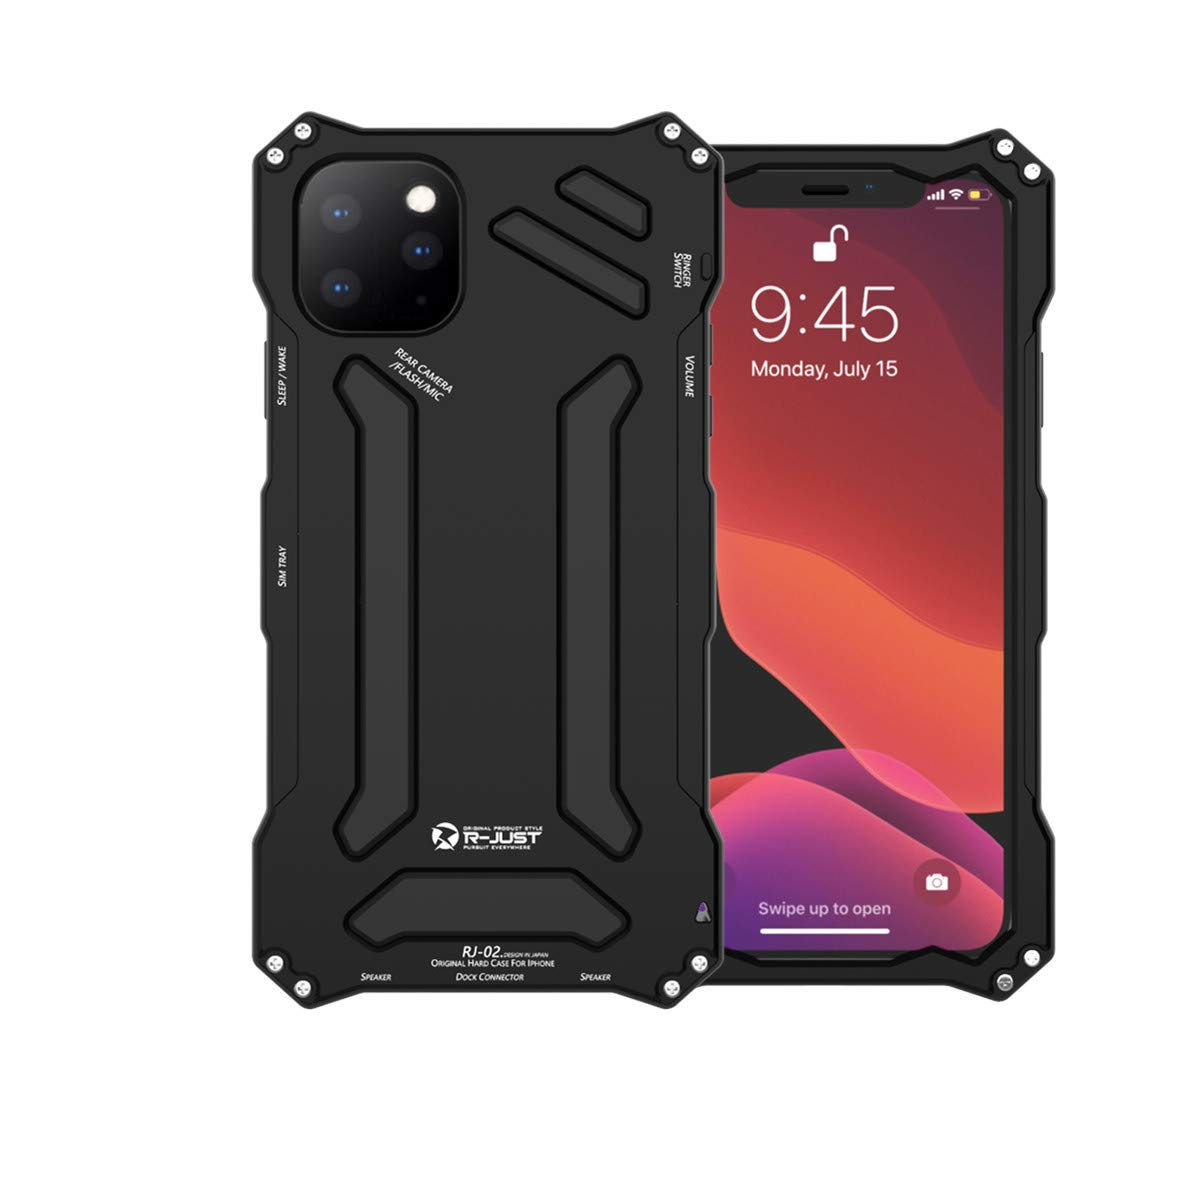 R JUST Shockproof Dropproof Protection Mechanical